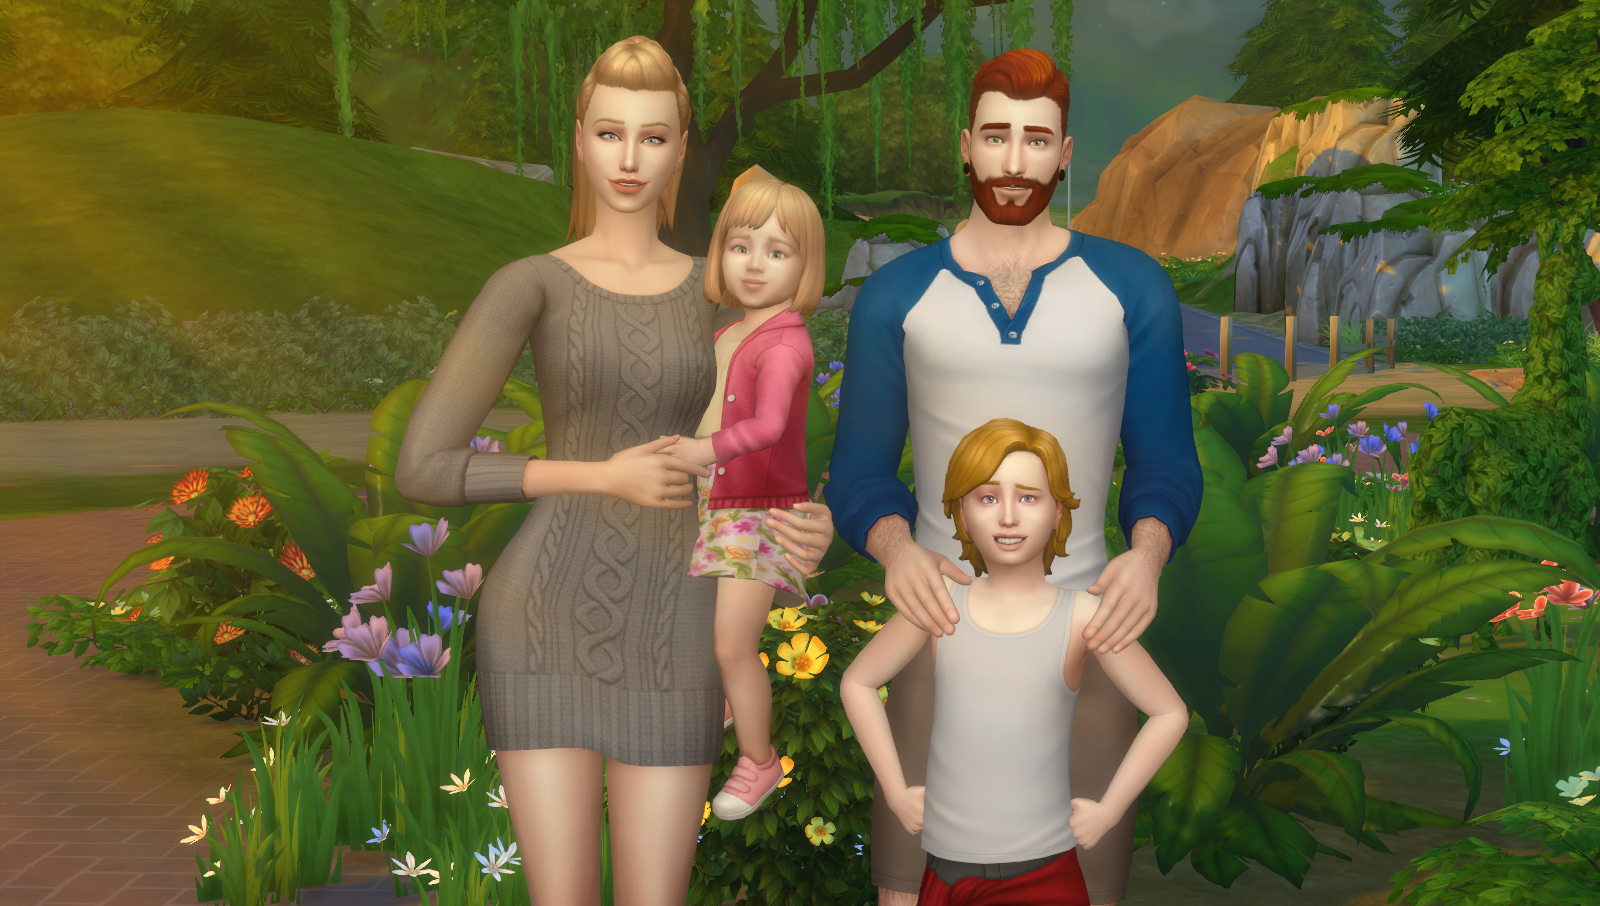 Now There Are 4 Poses Per Sim It Is A Great Set For Taking Portrait Picture Of Your Family Isnt I Hope You Appraciate